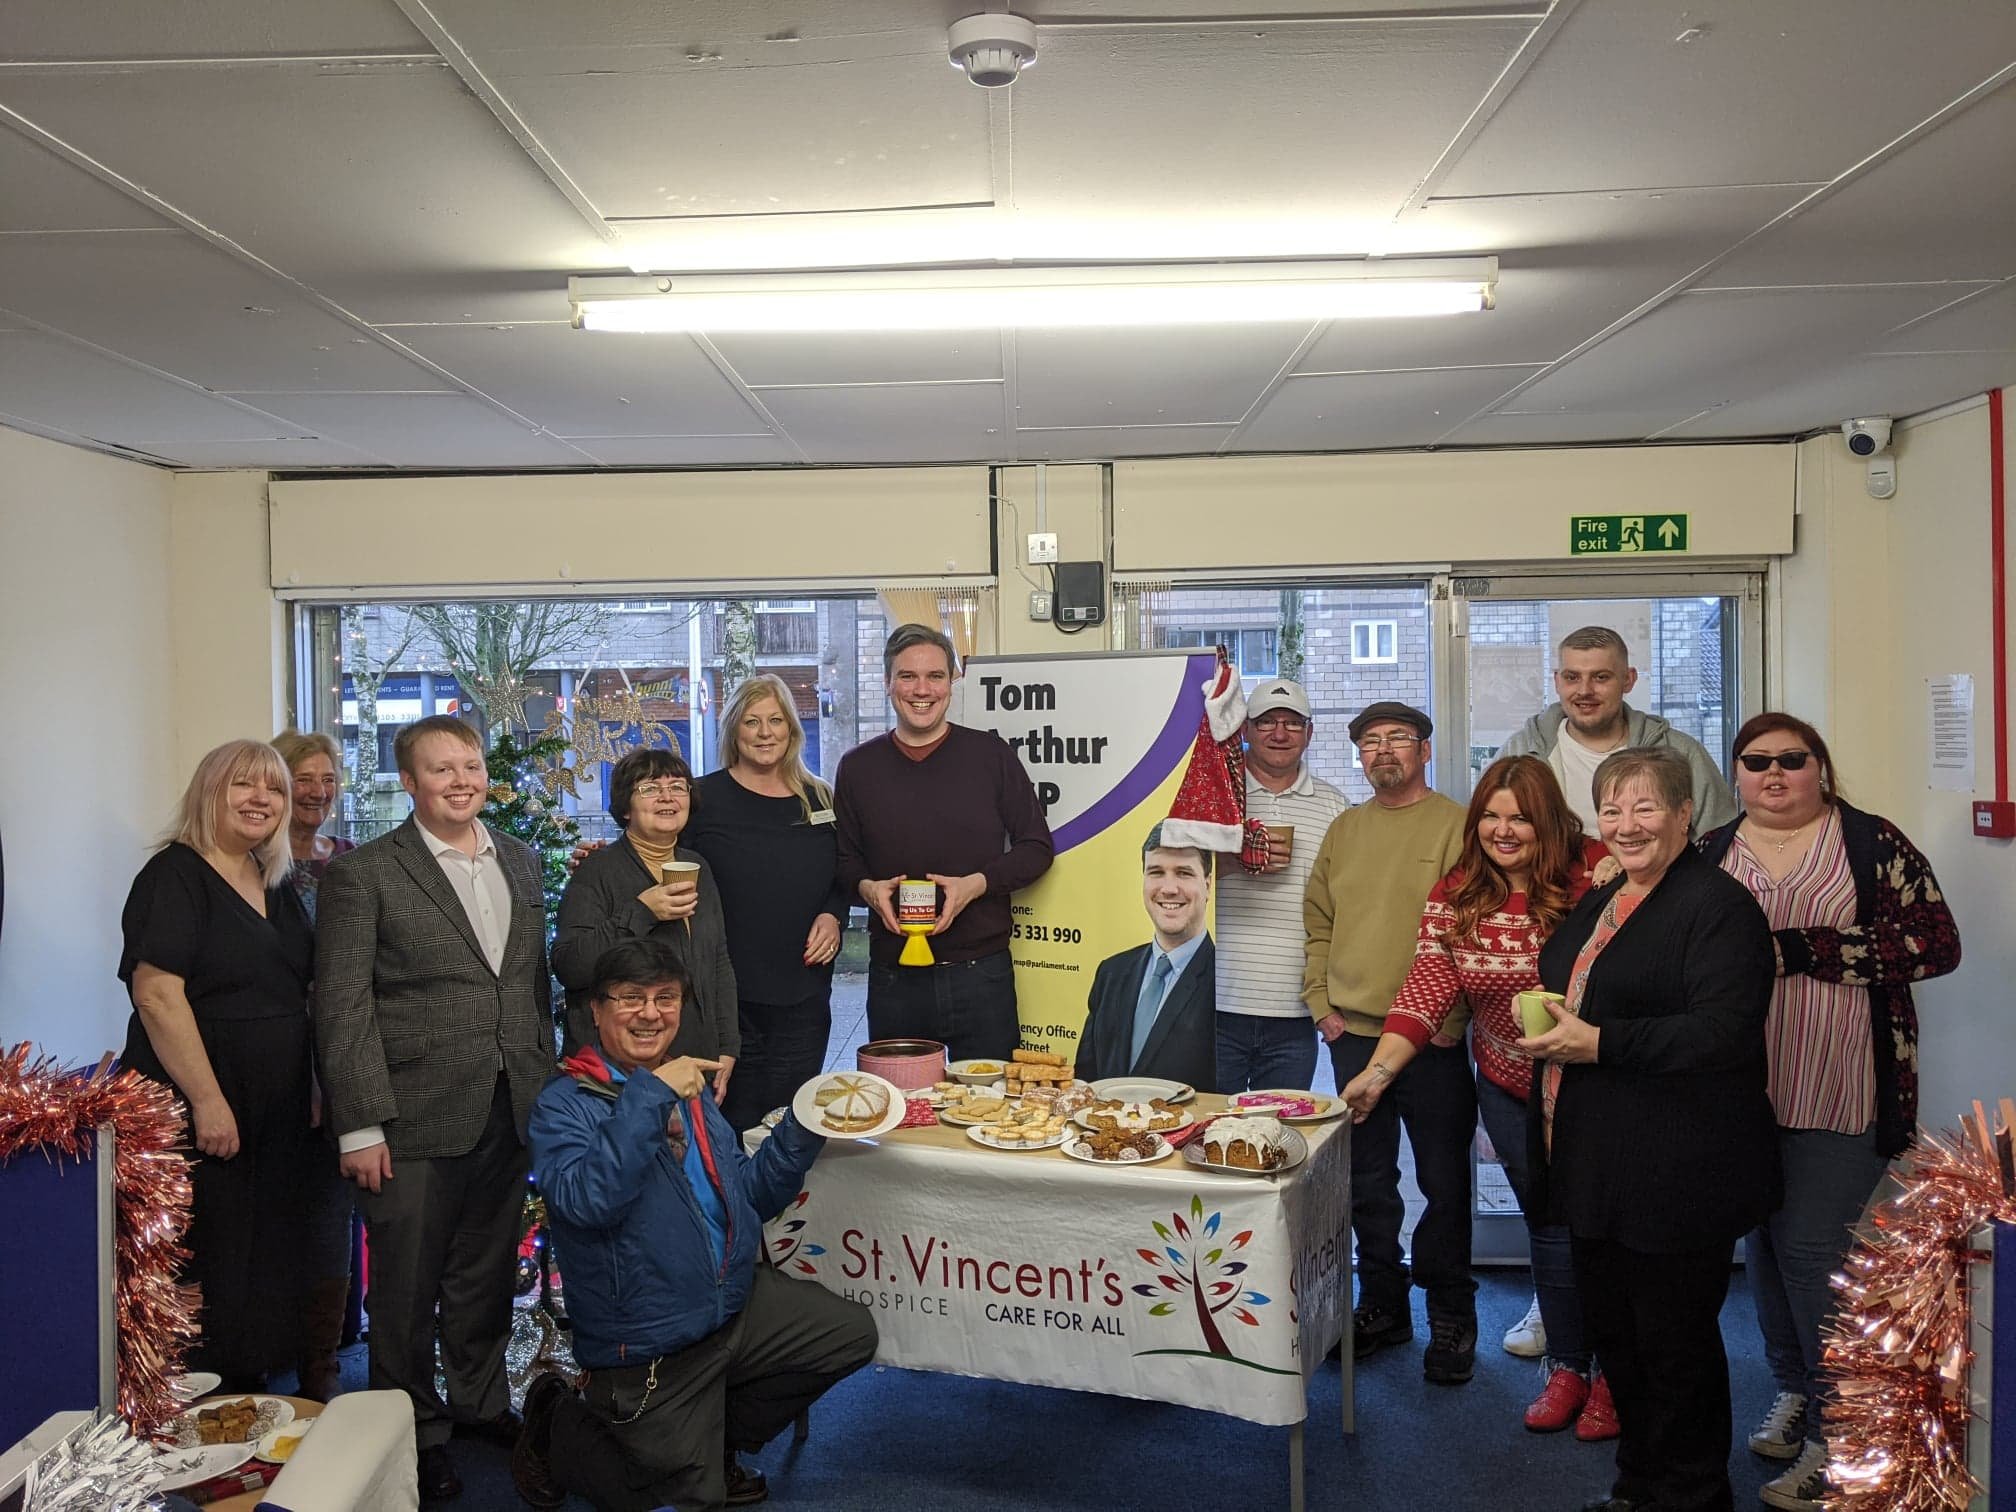 TOM ARTHUR MSP BRINGS COMMUNITY TOGETHER IN AID OF ST VINCENT'S HOSPICE